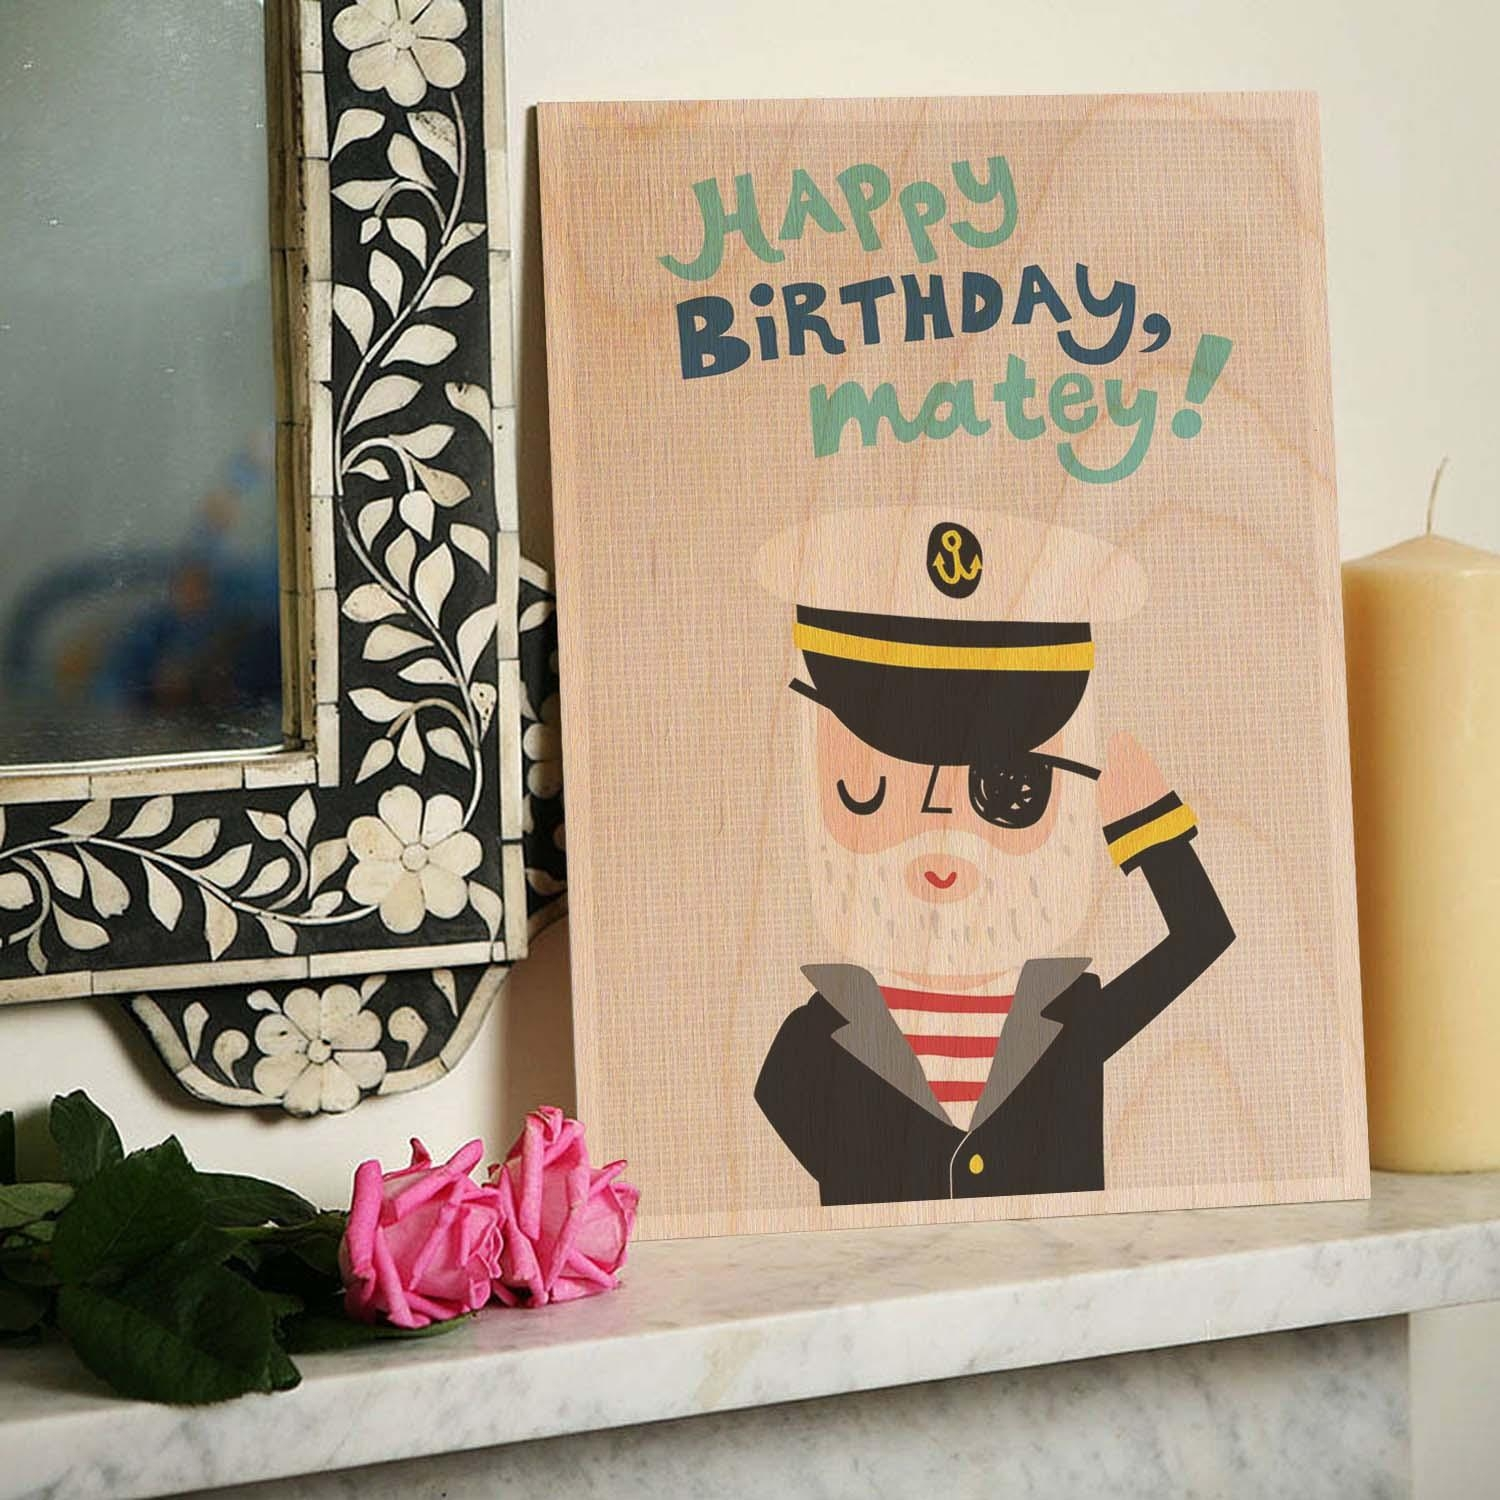 Happy Birthday Matey Wooden Timbergram Wall Art – Wooden Postcards Inside Happy Birthday Wall Art (Image 12 of 20)